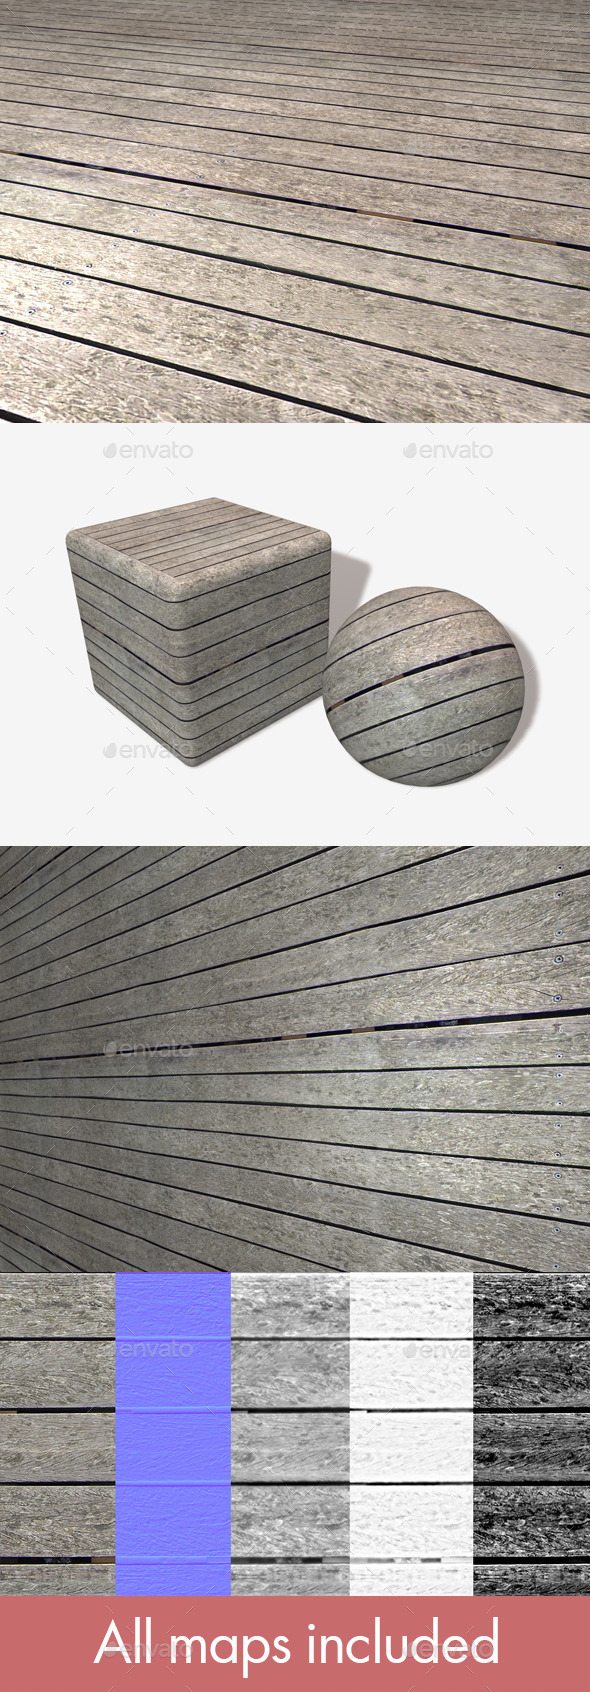 Weathered Wooden Planks Seamless Texture - 3DOcean Item for Sale